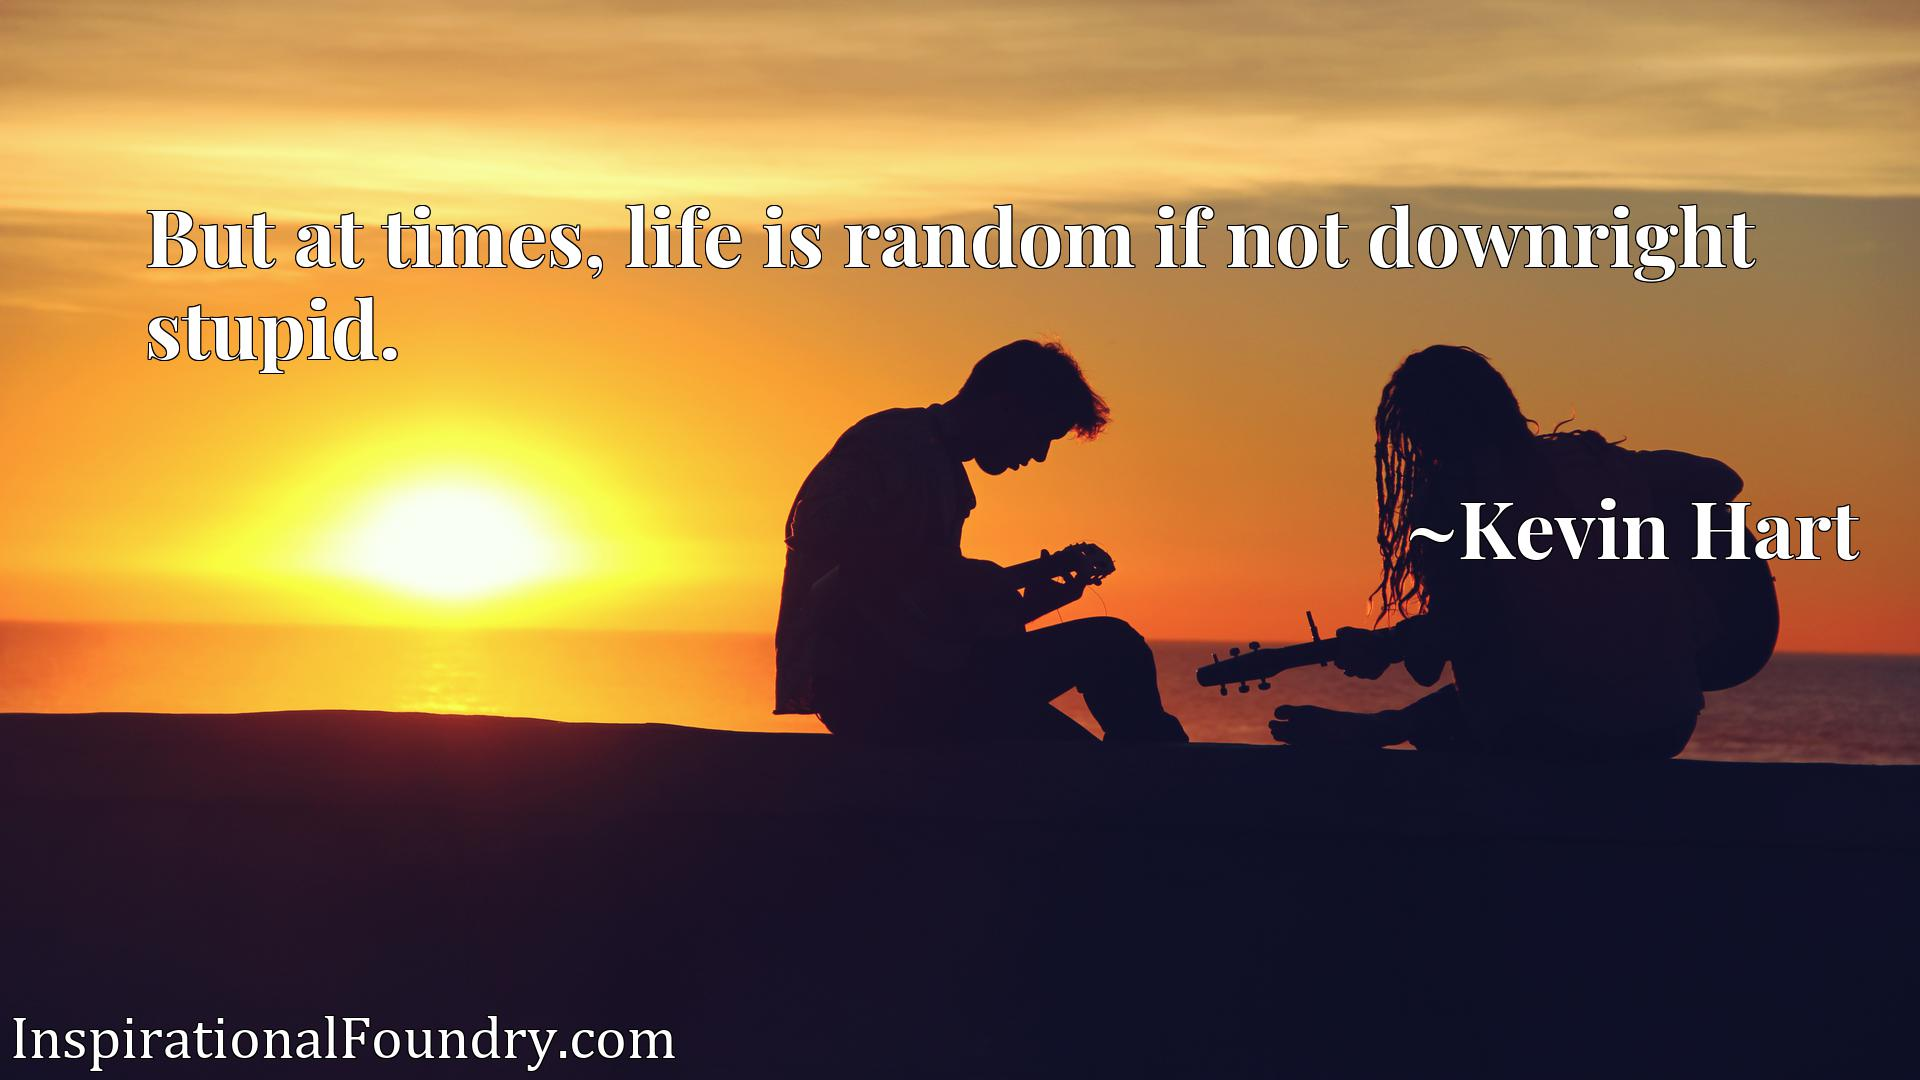 But at times, life is random if not downright stupid.